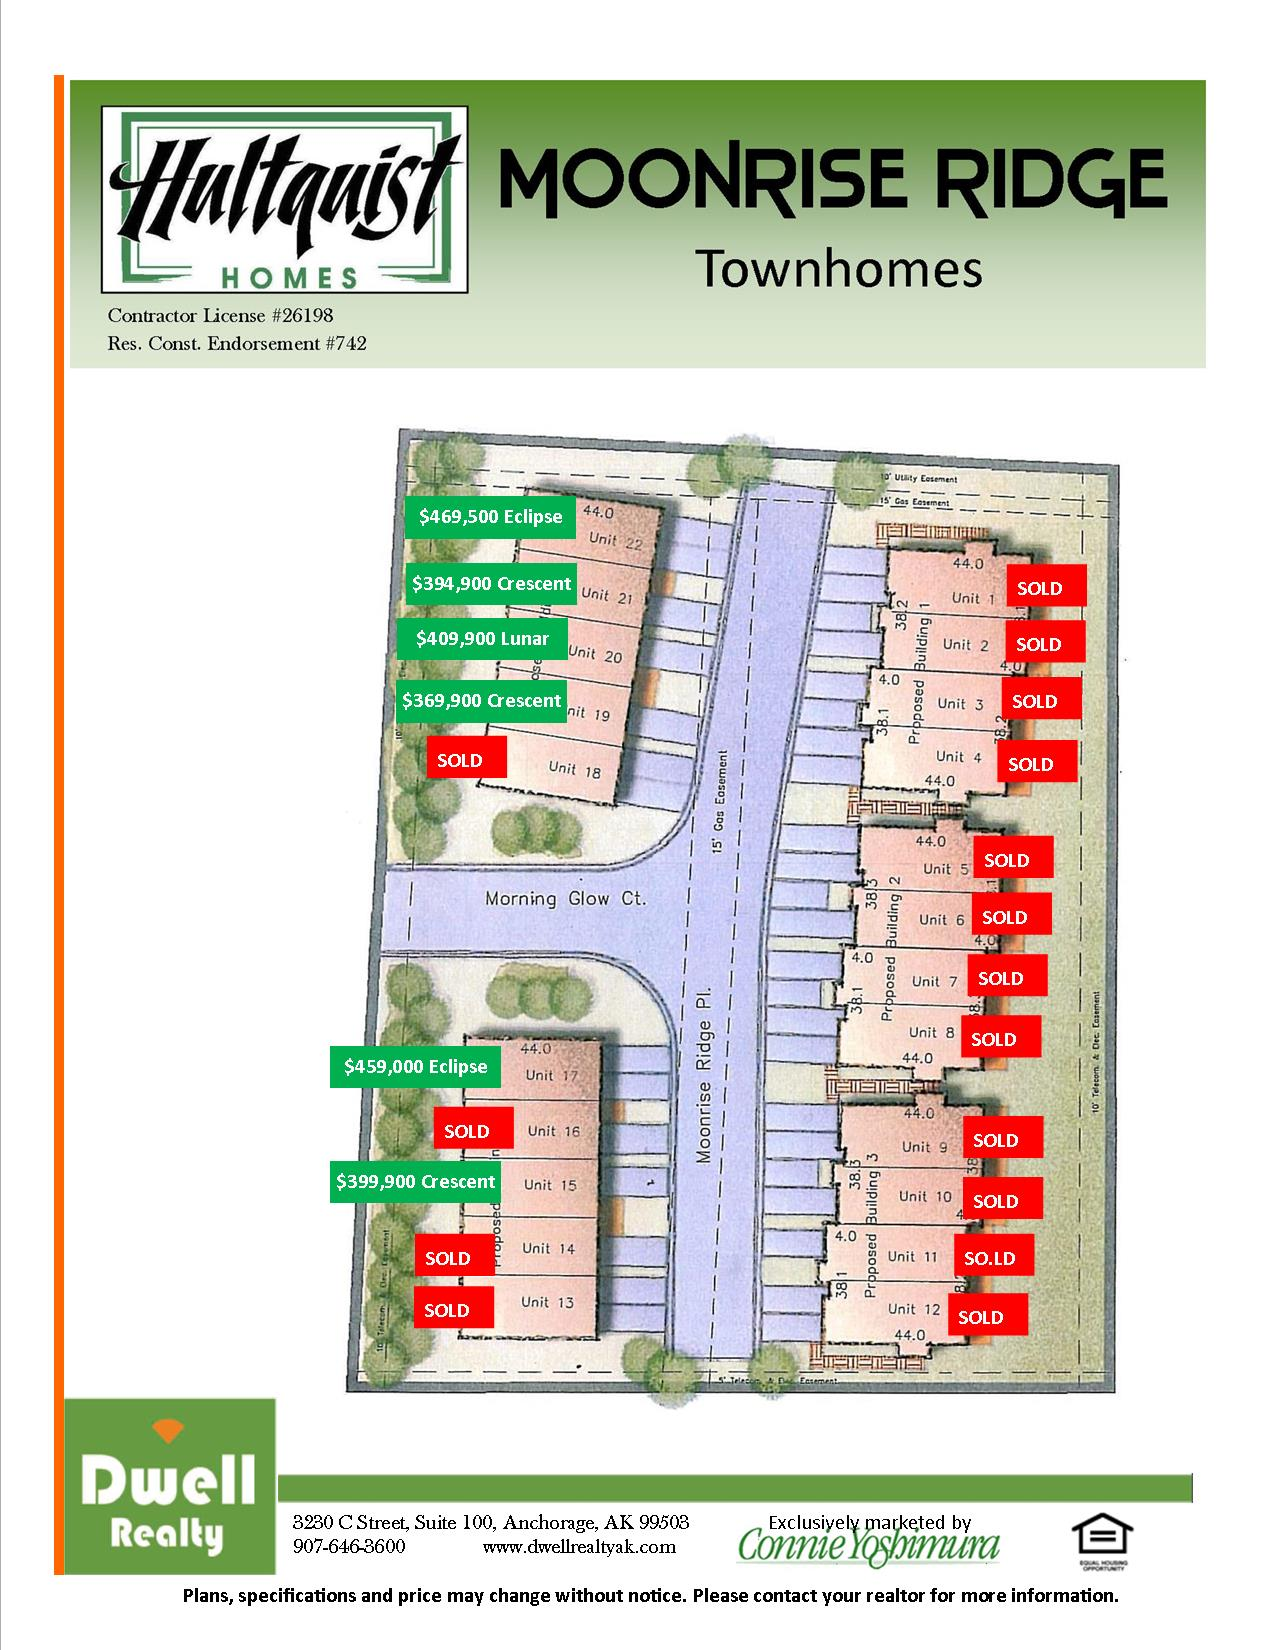 Moonrise Ridge Site Map as of 10-2-15